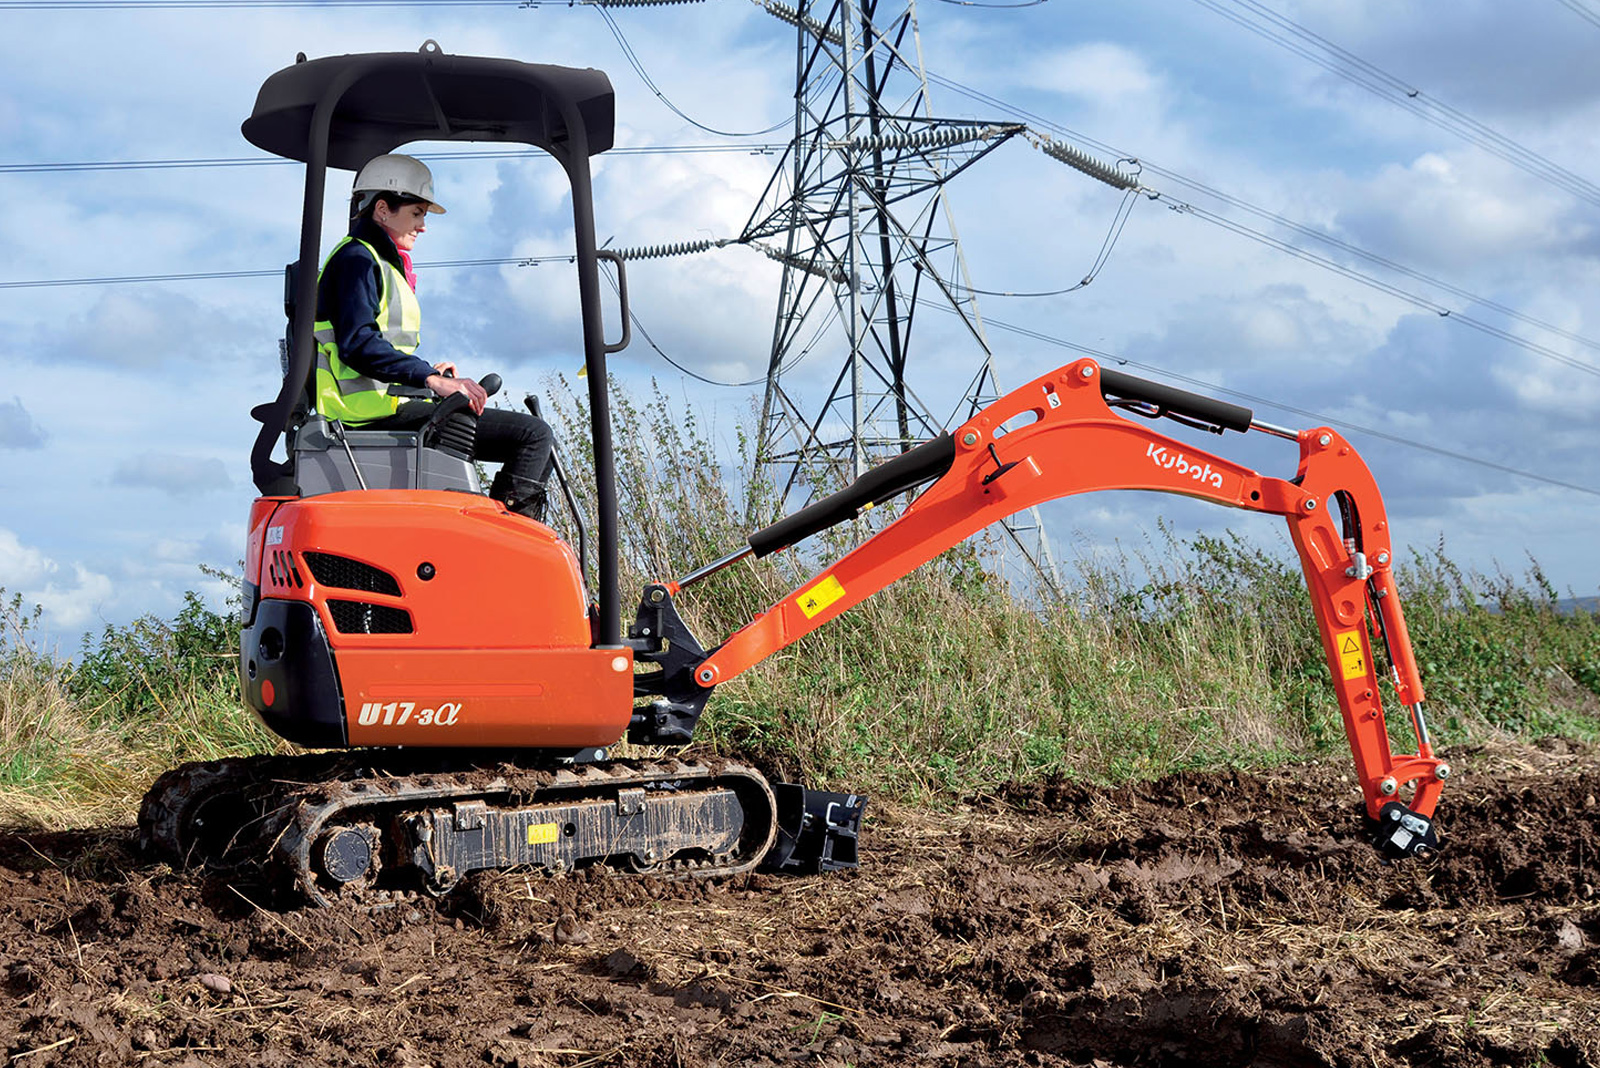 What to consider when purchasing a mini-excavator